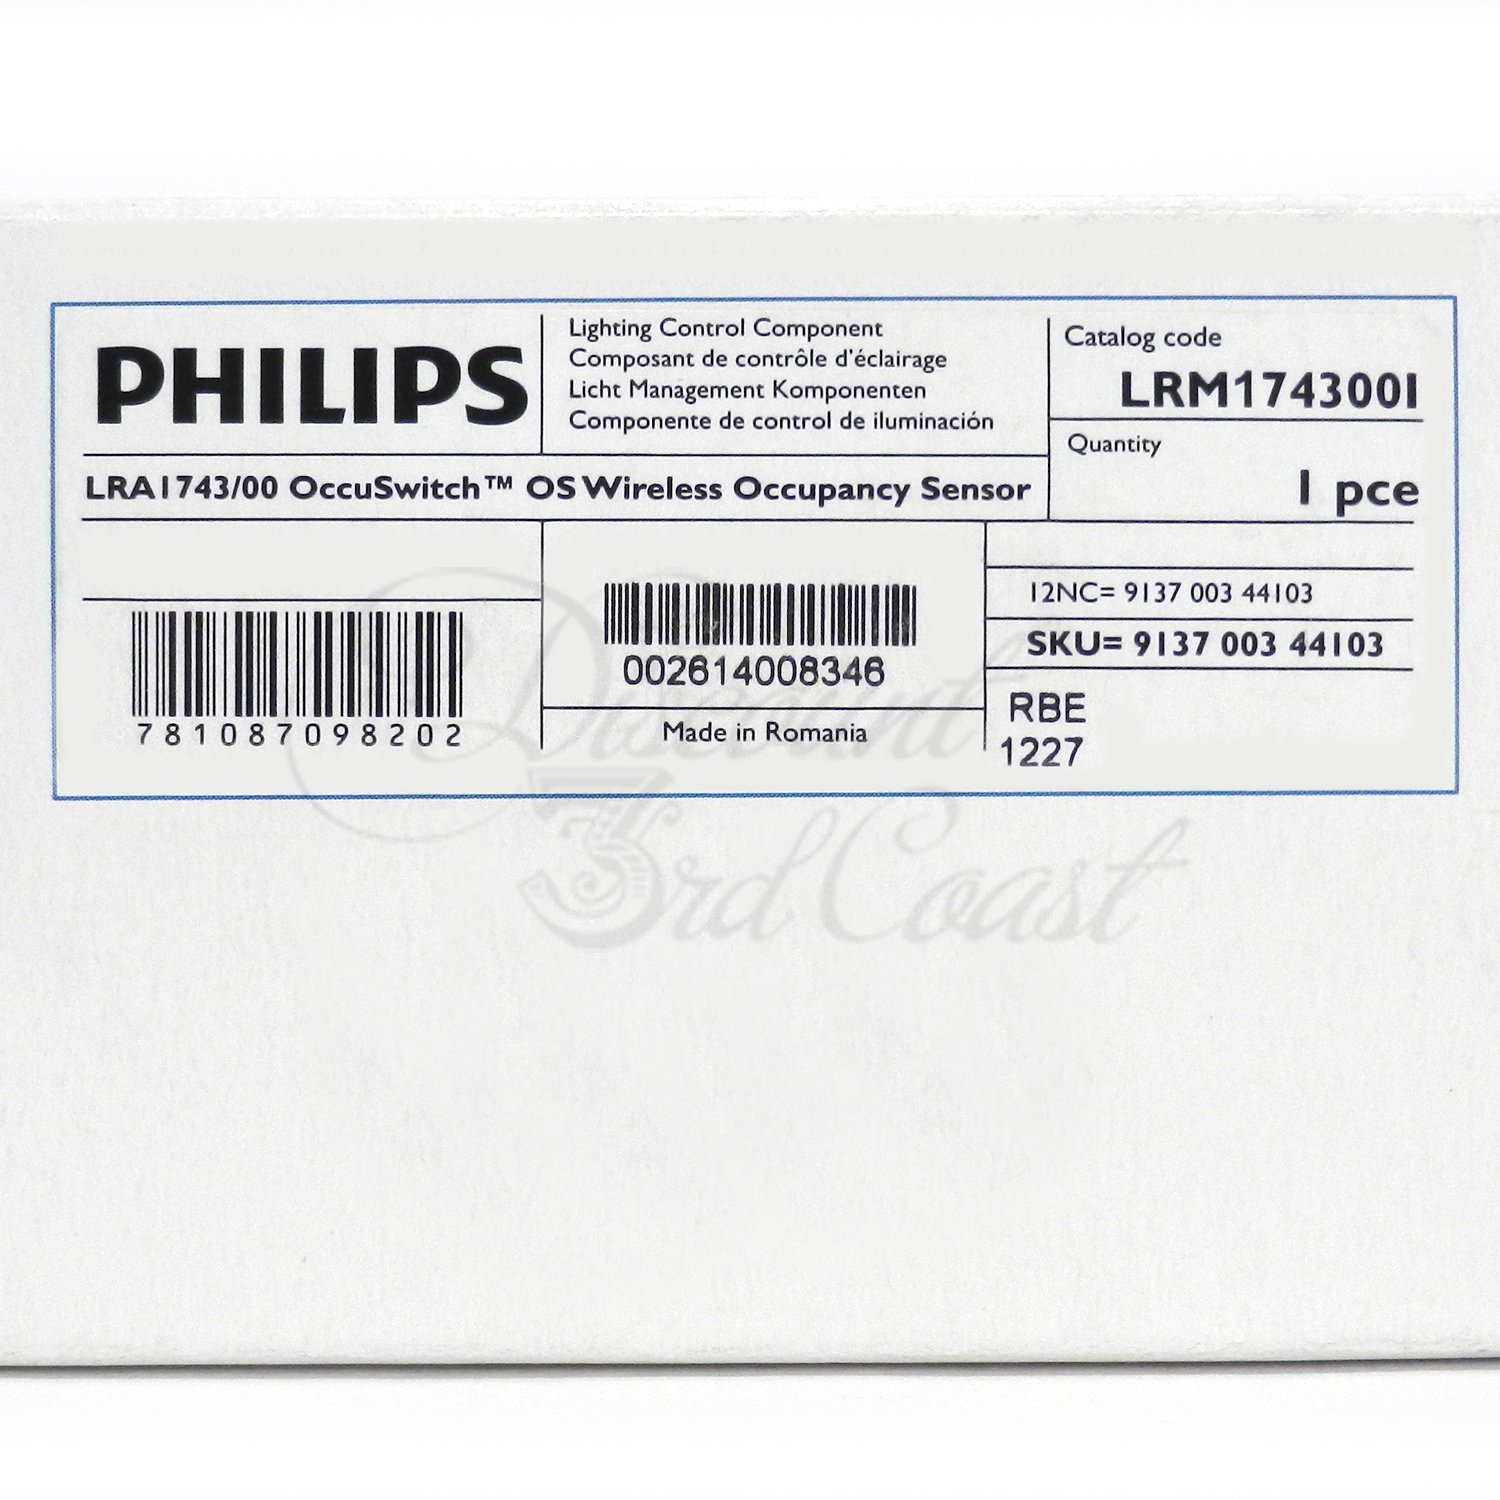 Amazon.com : PHILIPS LRM1743/00 OCCUSWITCH, WIRELESS OCCUPANCY SENSOR : Camera & Photo